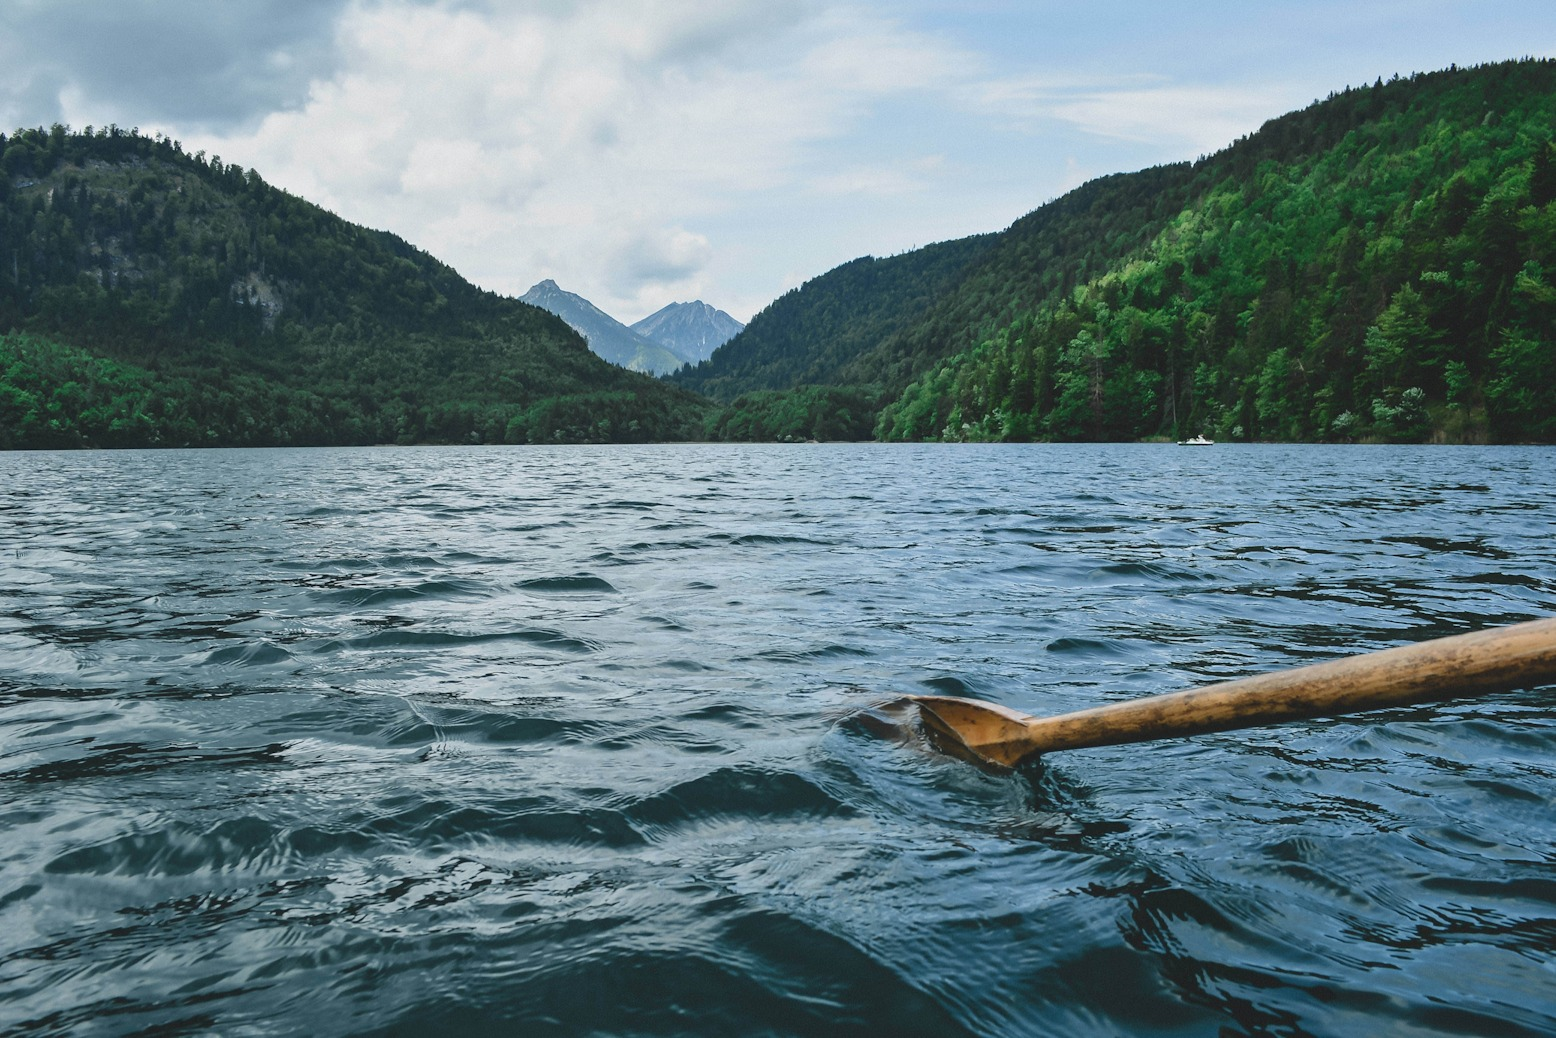 one oar rowing in a peaceful lake